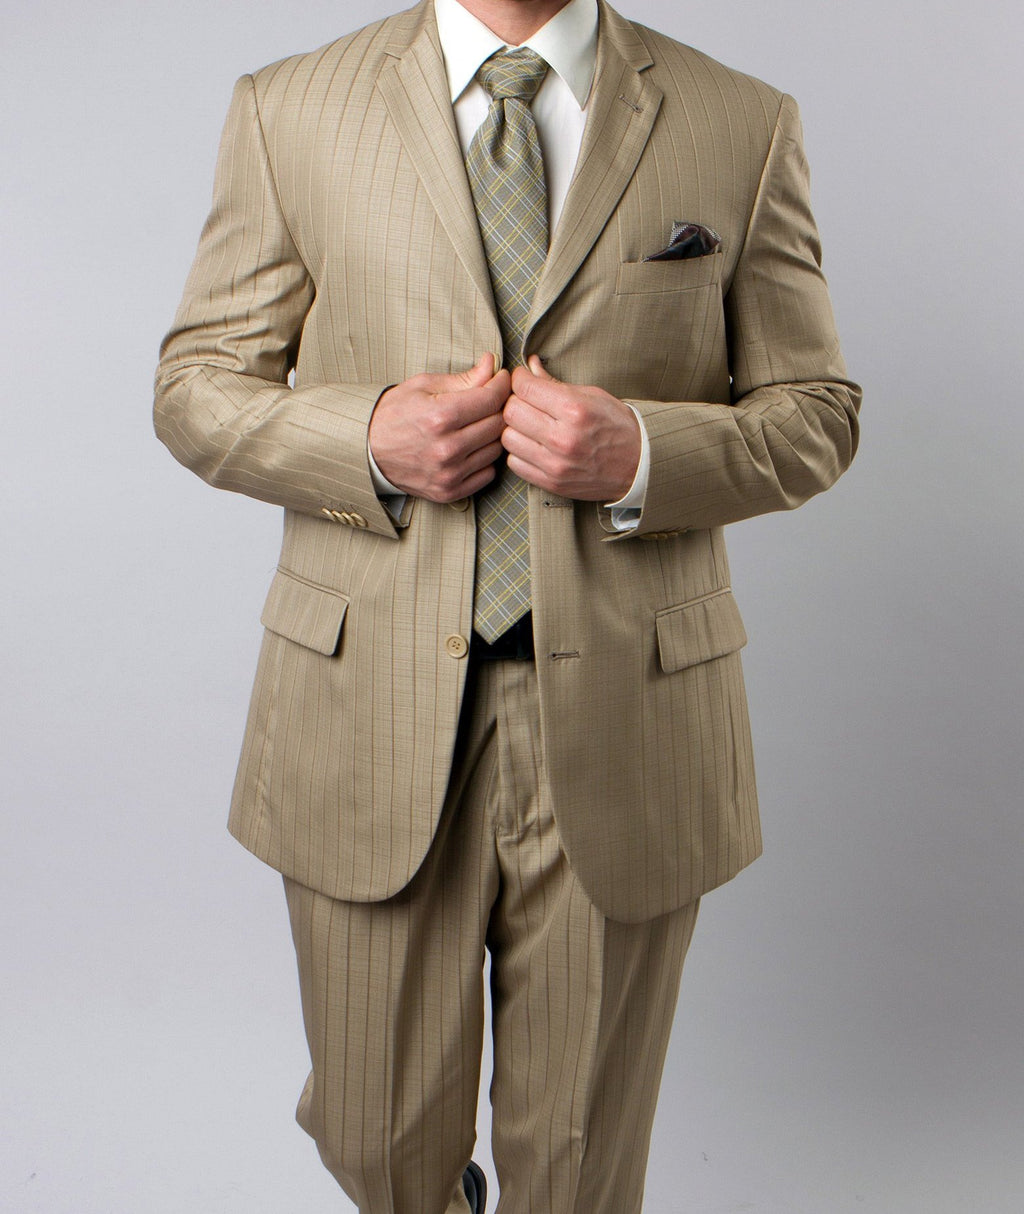 Regular Fit Suit Tone On Tone Stripe Design in New Gold 2 Pieces - SUITS OUTLETS